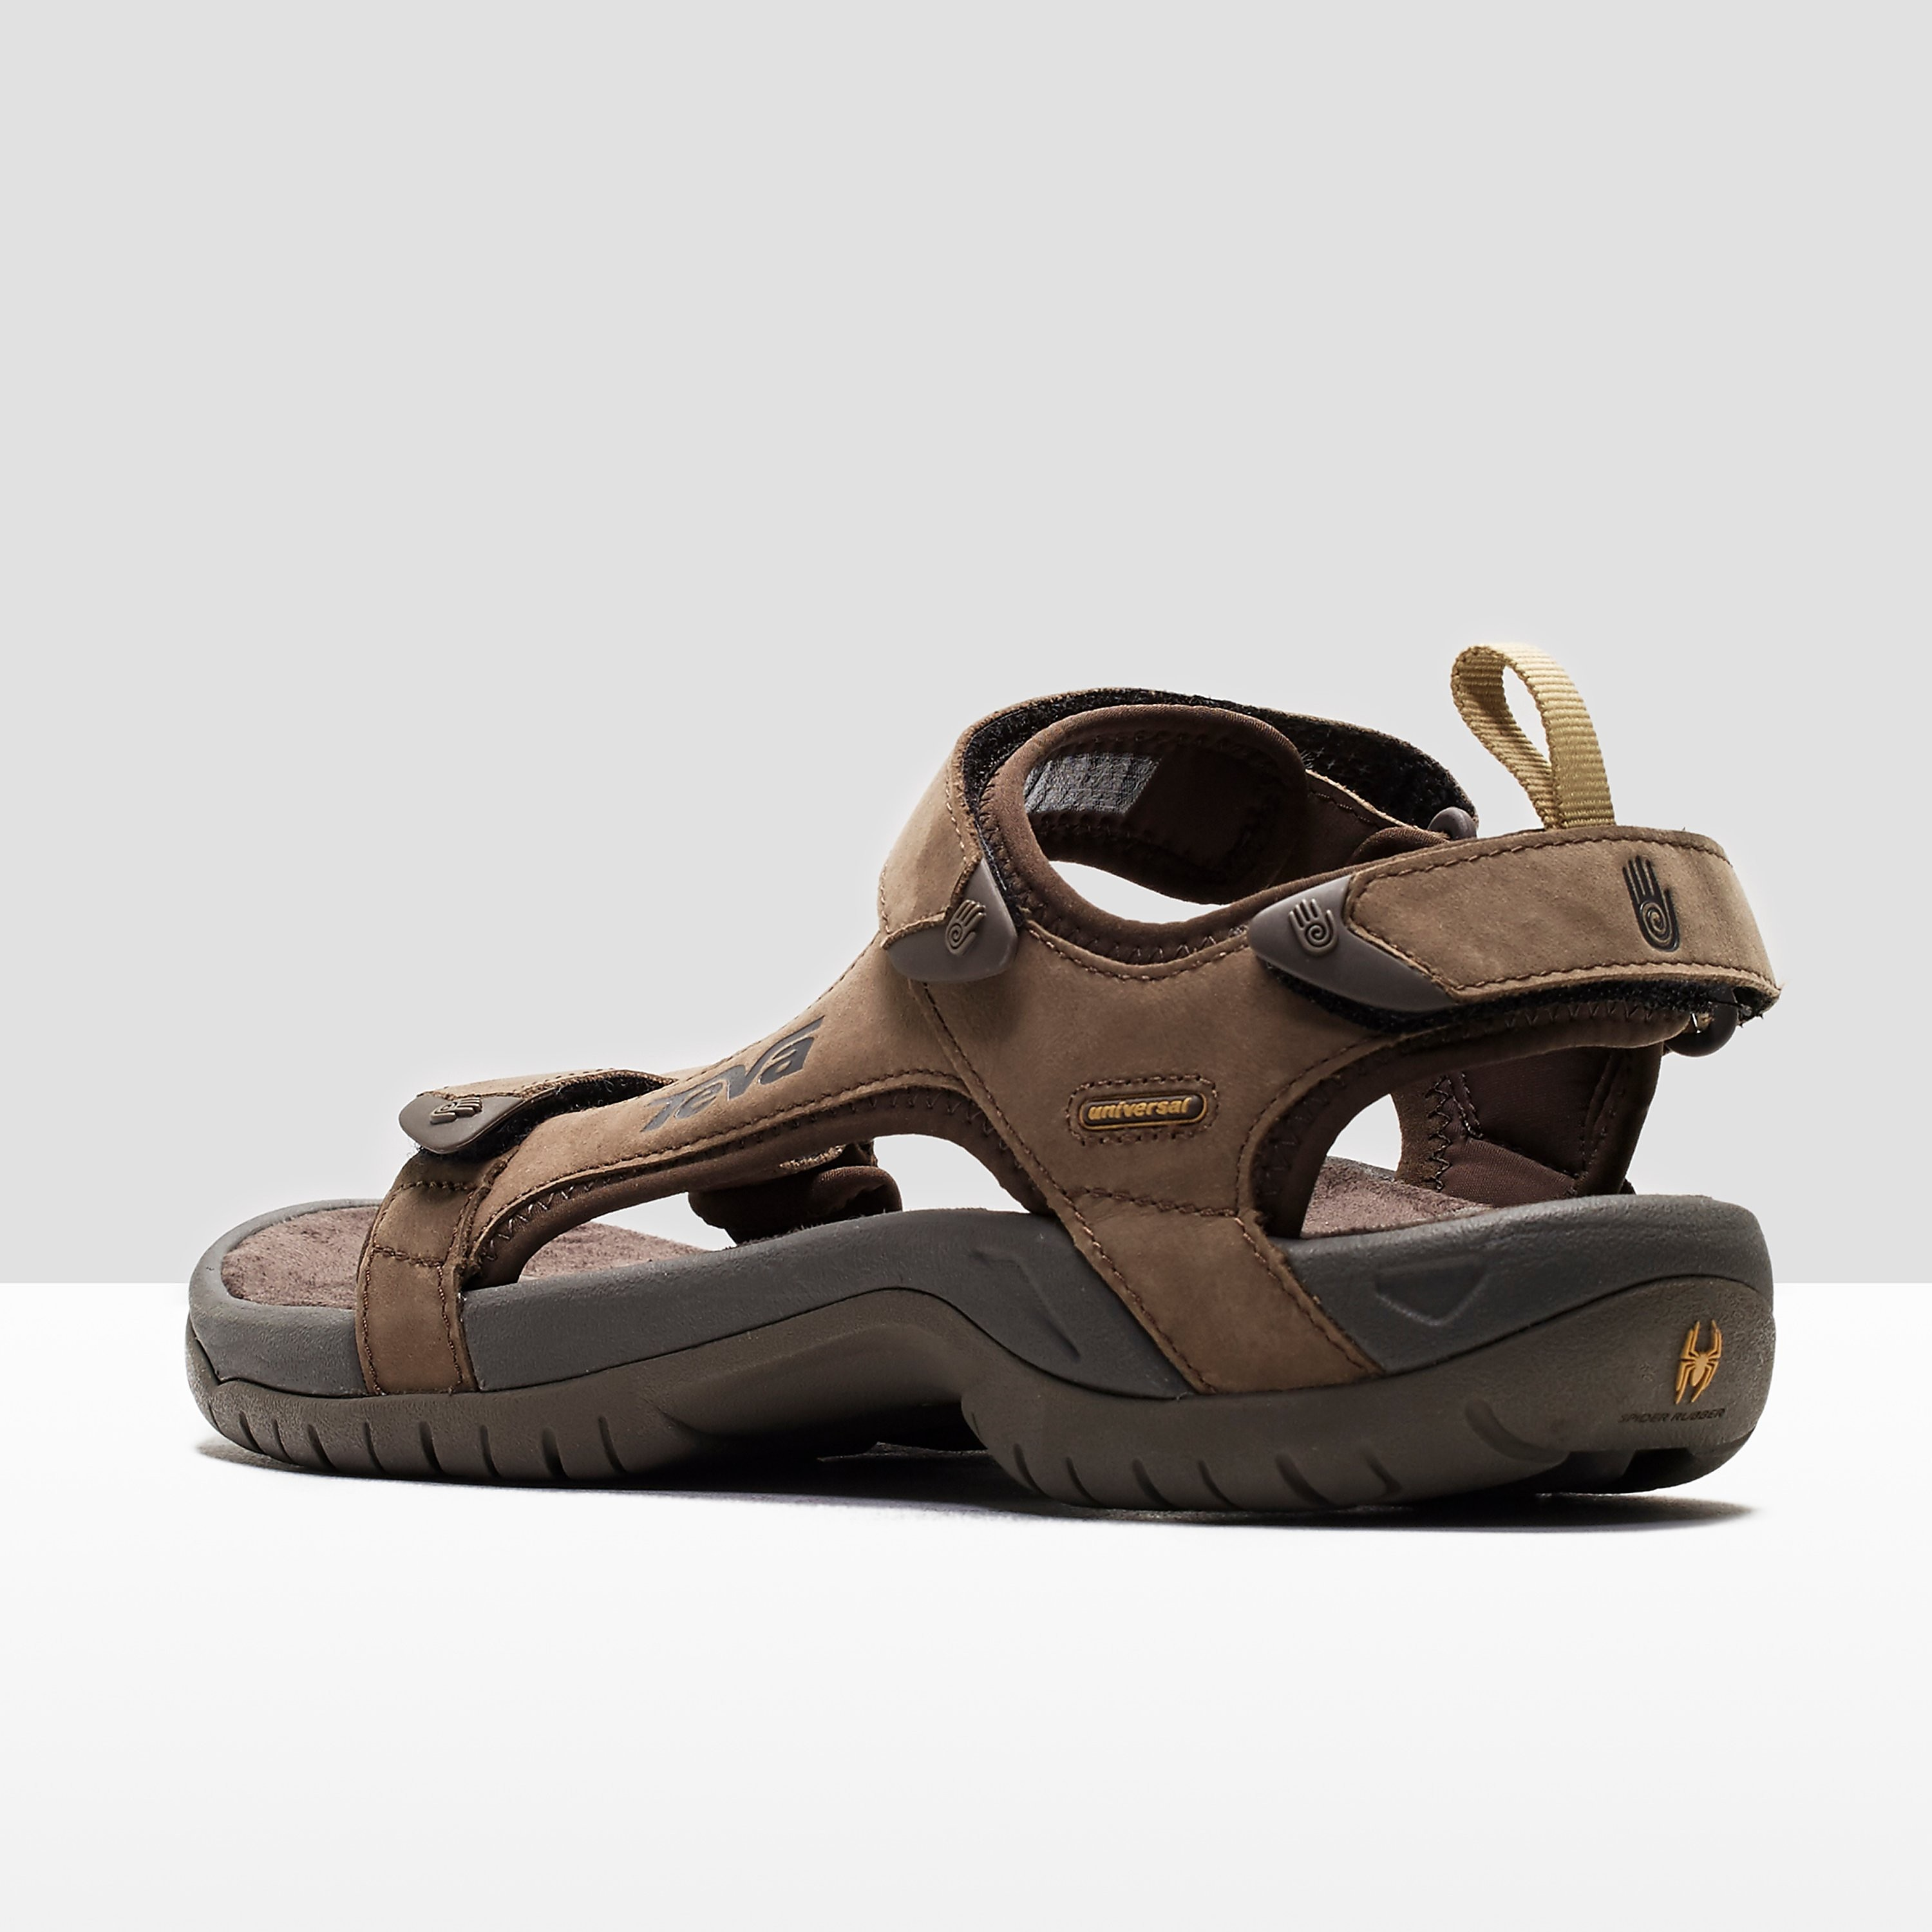 Teva Tanza Leather Men's Sandal